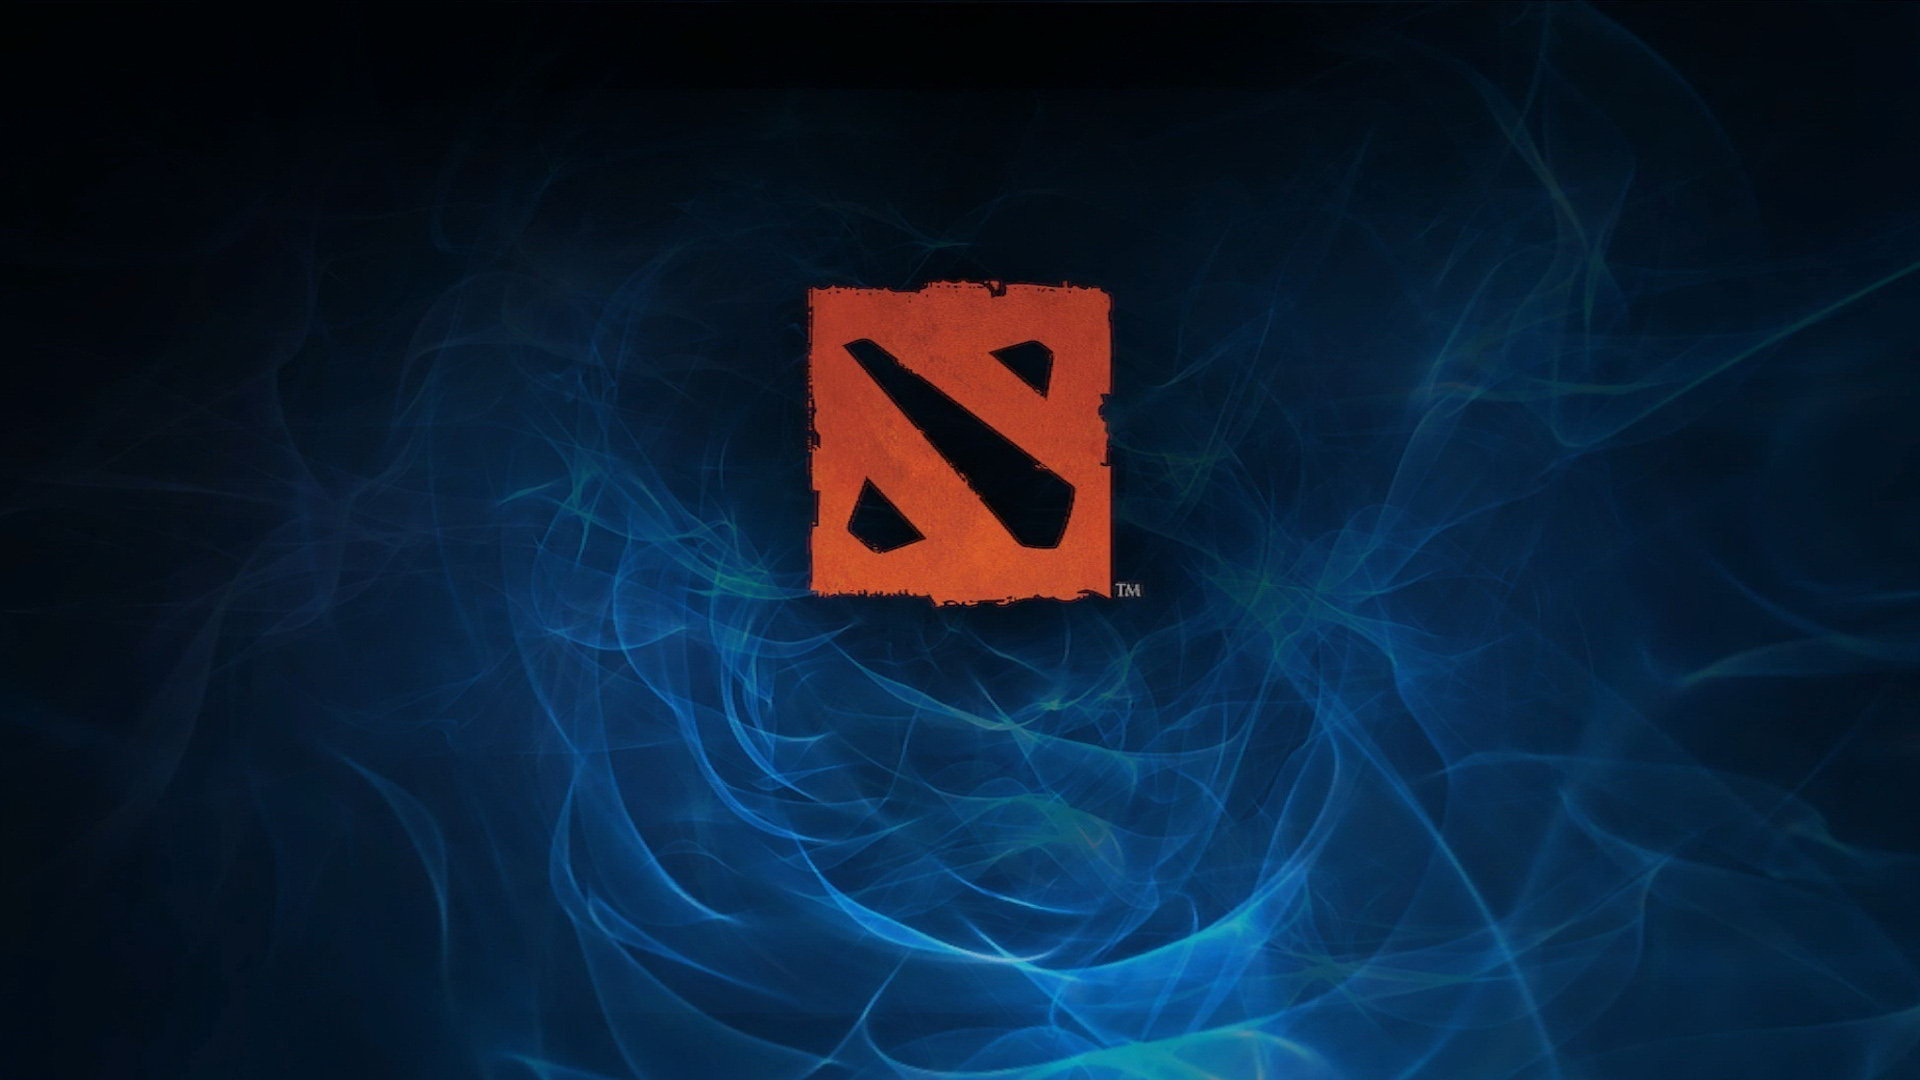 Hd wallpaper dota 2 - Dota 2 Wallpapers